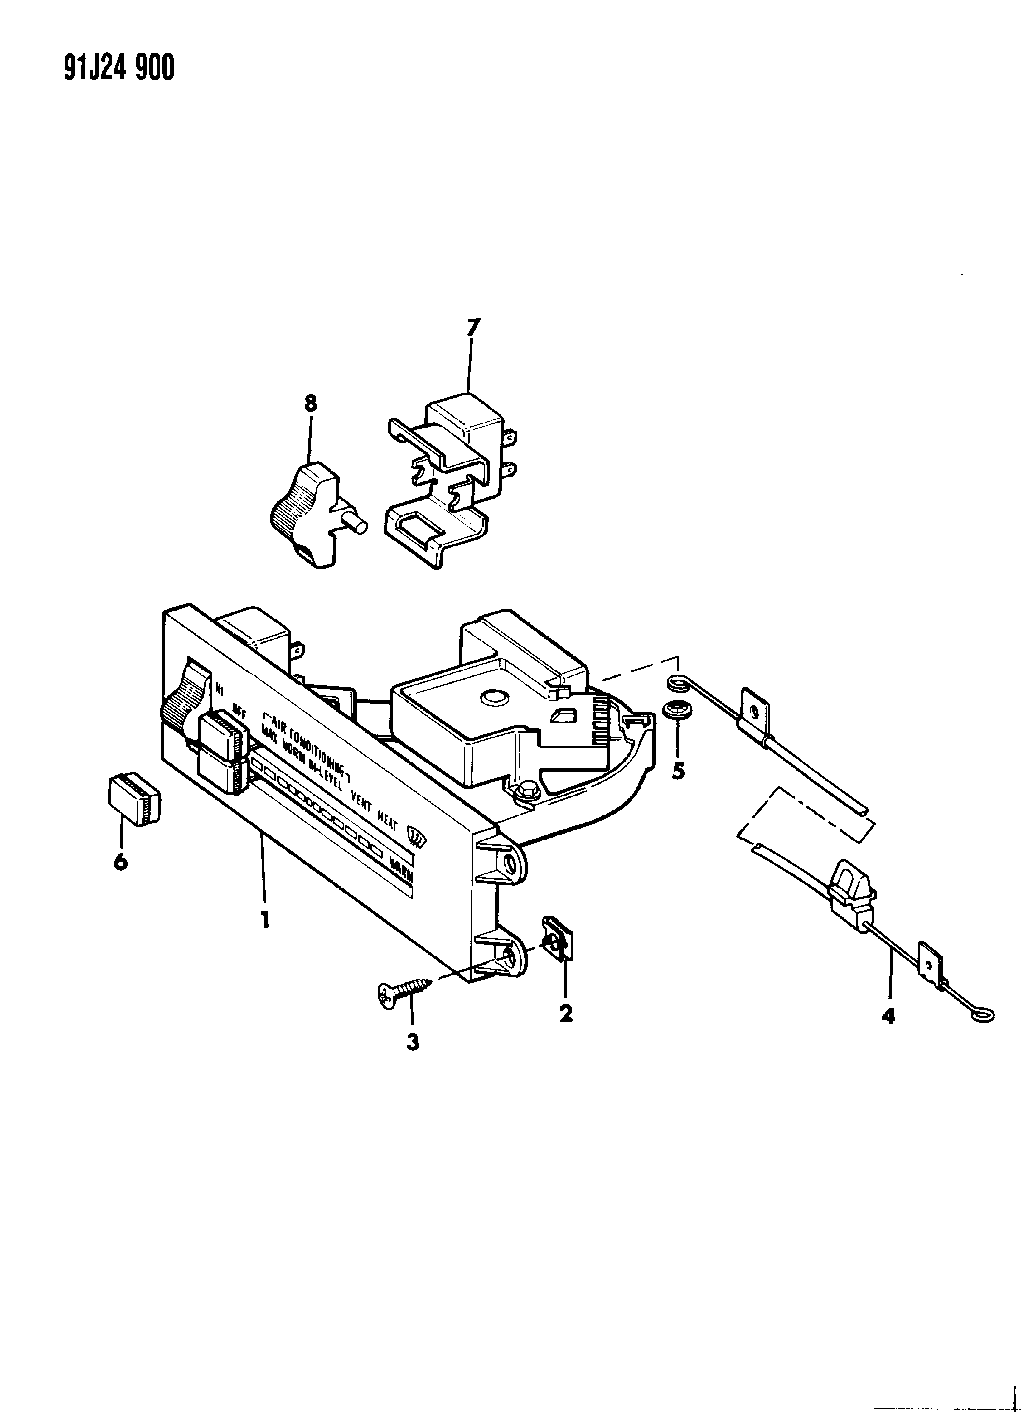 Jeep Comanche Controls Heater And Air Conditioning